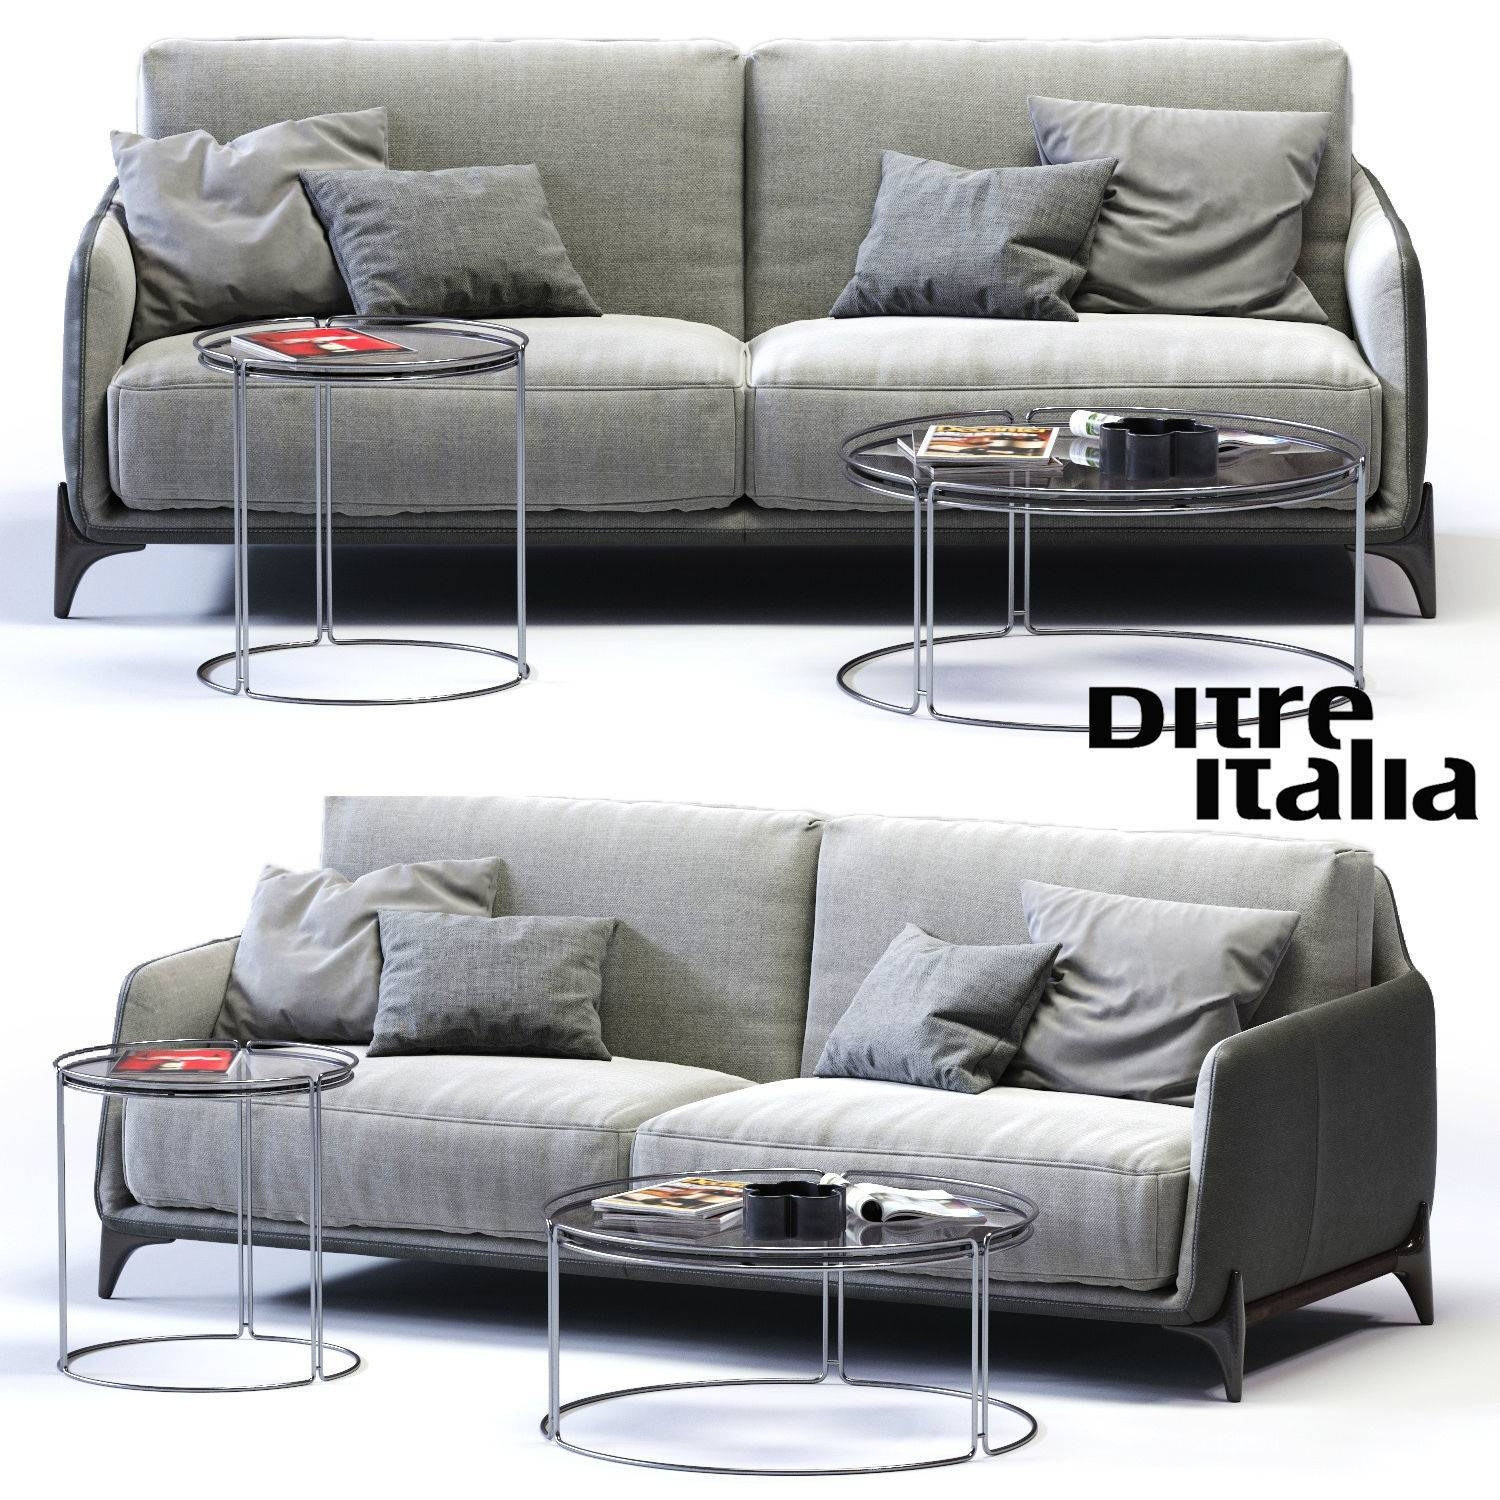 3D Model Ditre Italia Elliot 3-Er Sofa Vr / Ar / Low-Poly Max Obj Fbx for Elliott Sofa (Image 3 of 30)